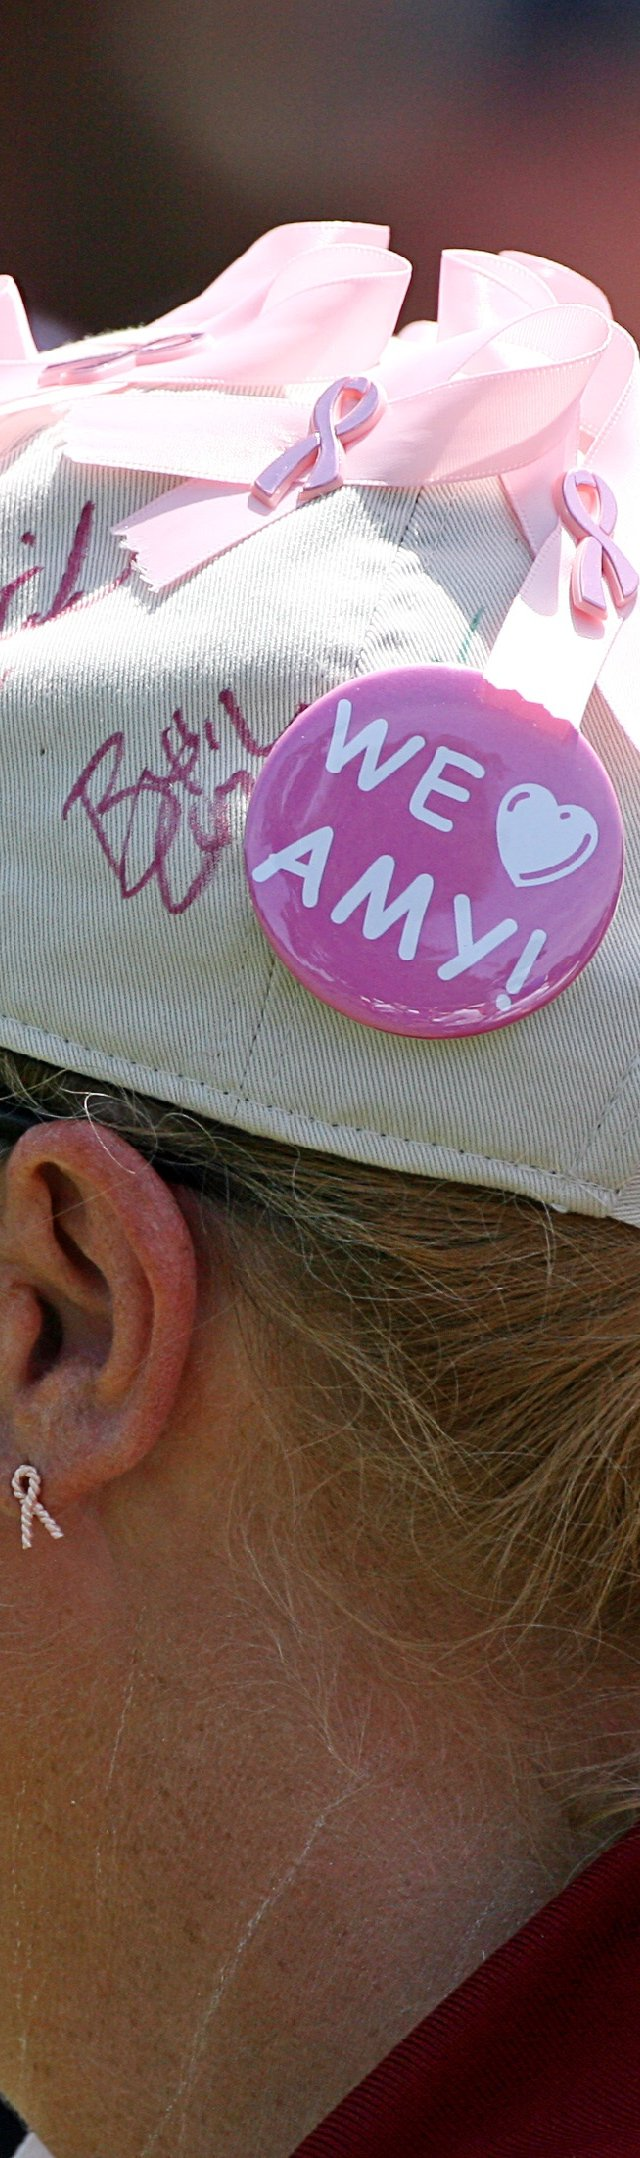 A tournament volunteer wears pink ribbons and a &#39;We Love Amy&#39; button on her hat to show her support for Amy Mickelson and breast cancer research during the third round of the Crowne Plaza Invitational at Colonial Country Club.